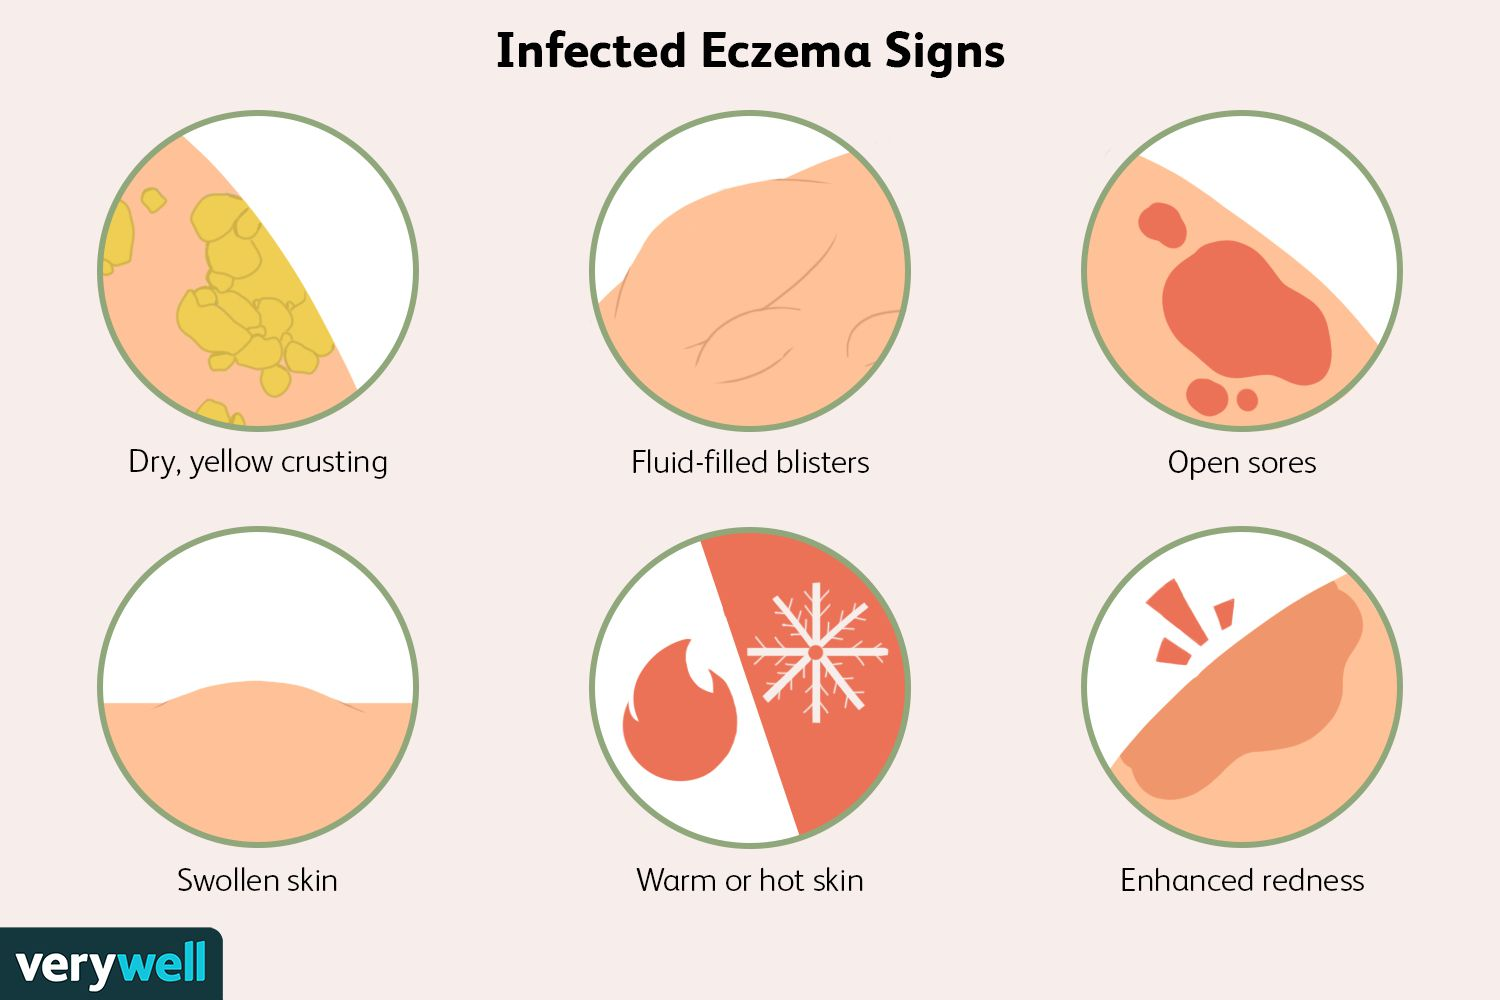 Infected Eczema Signs